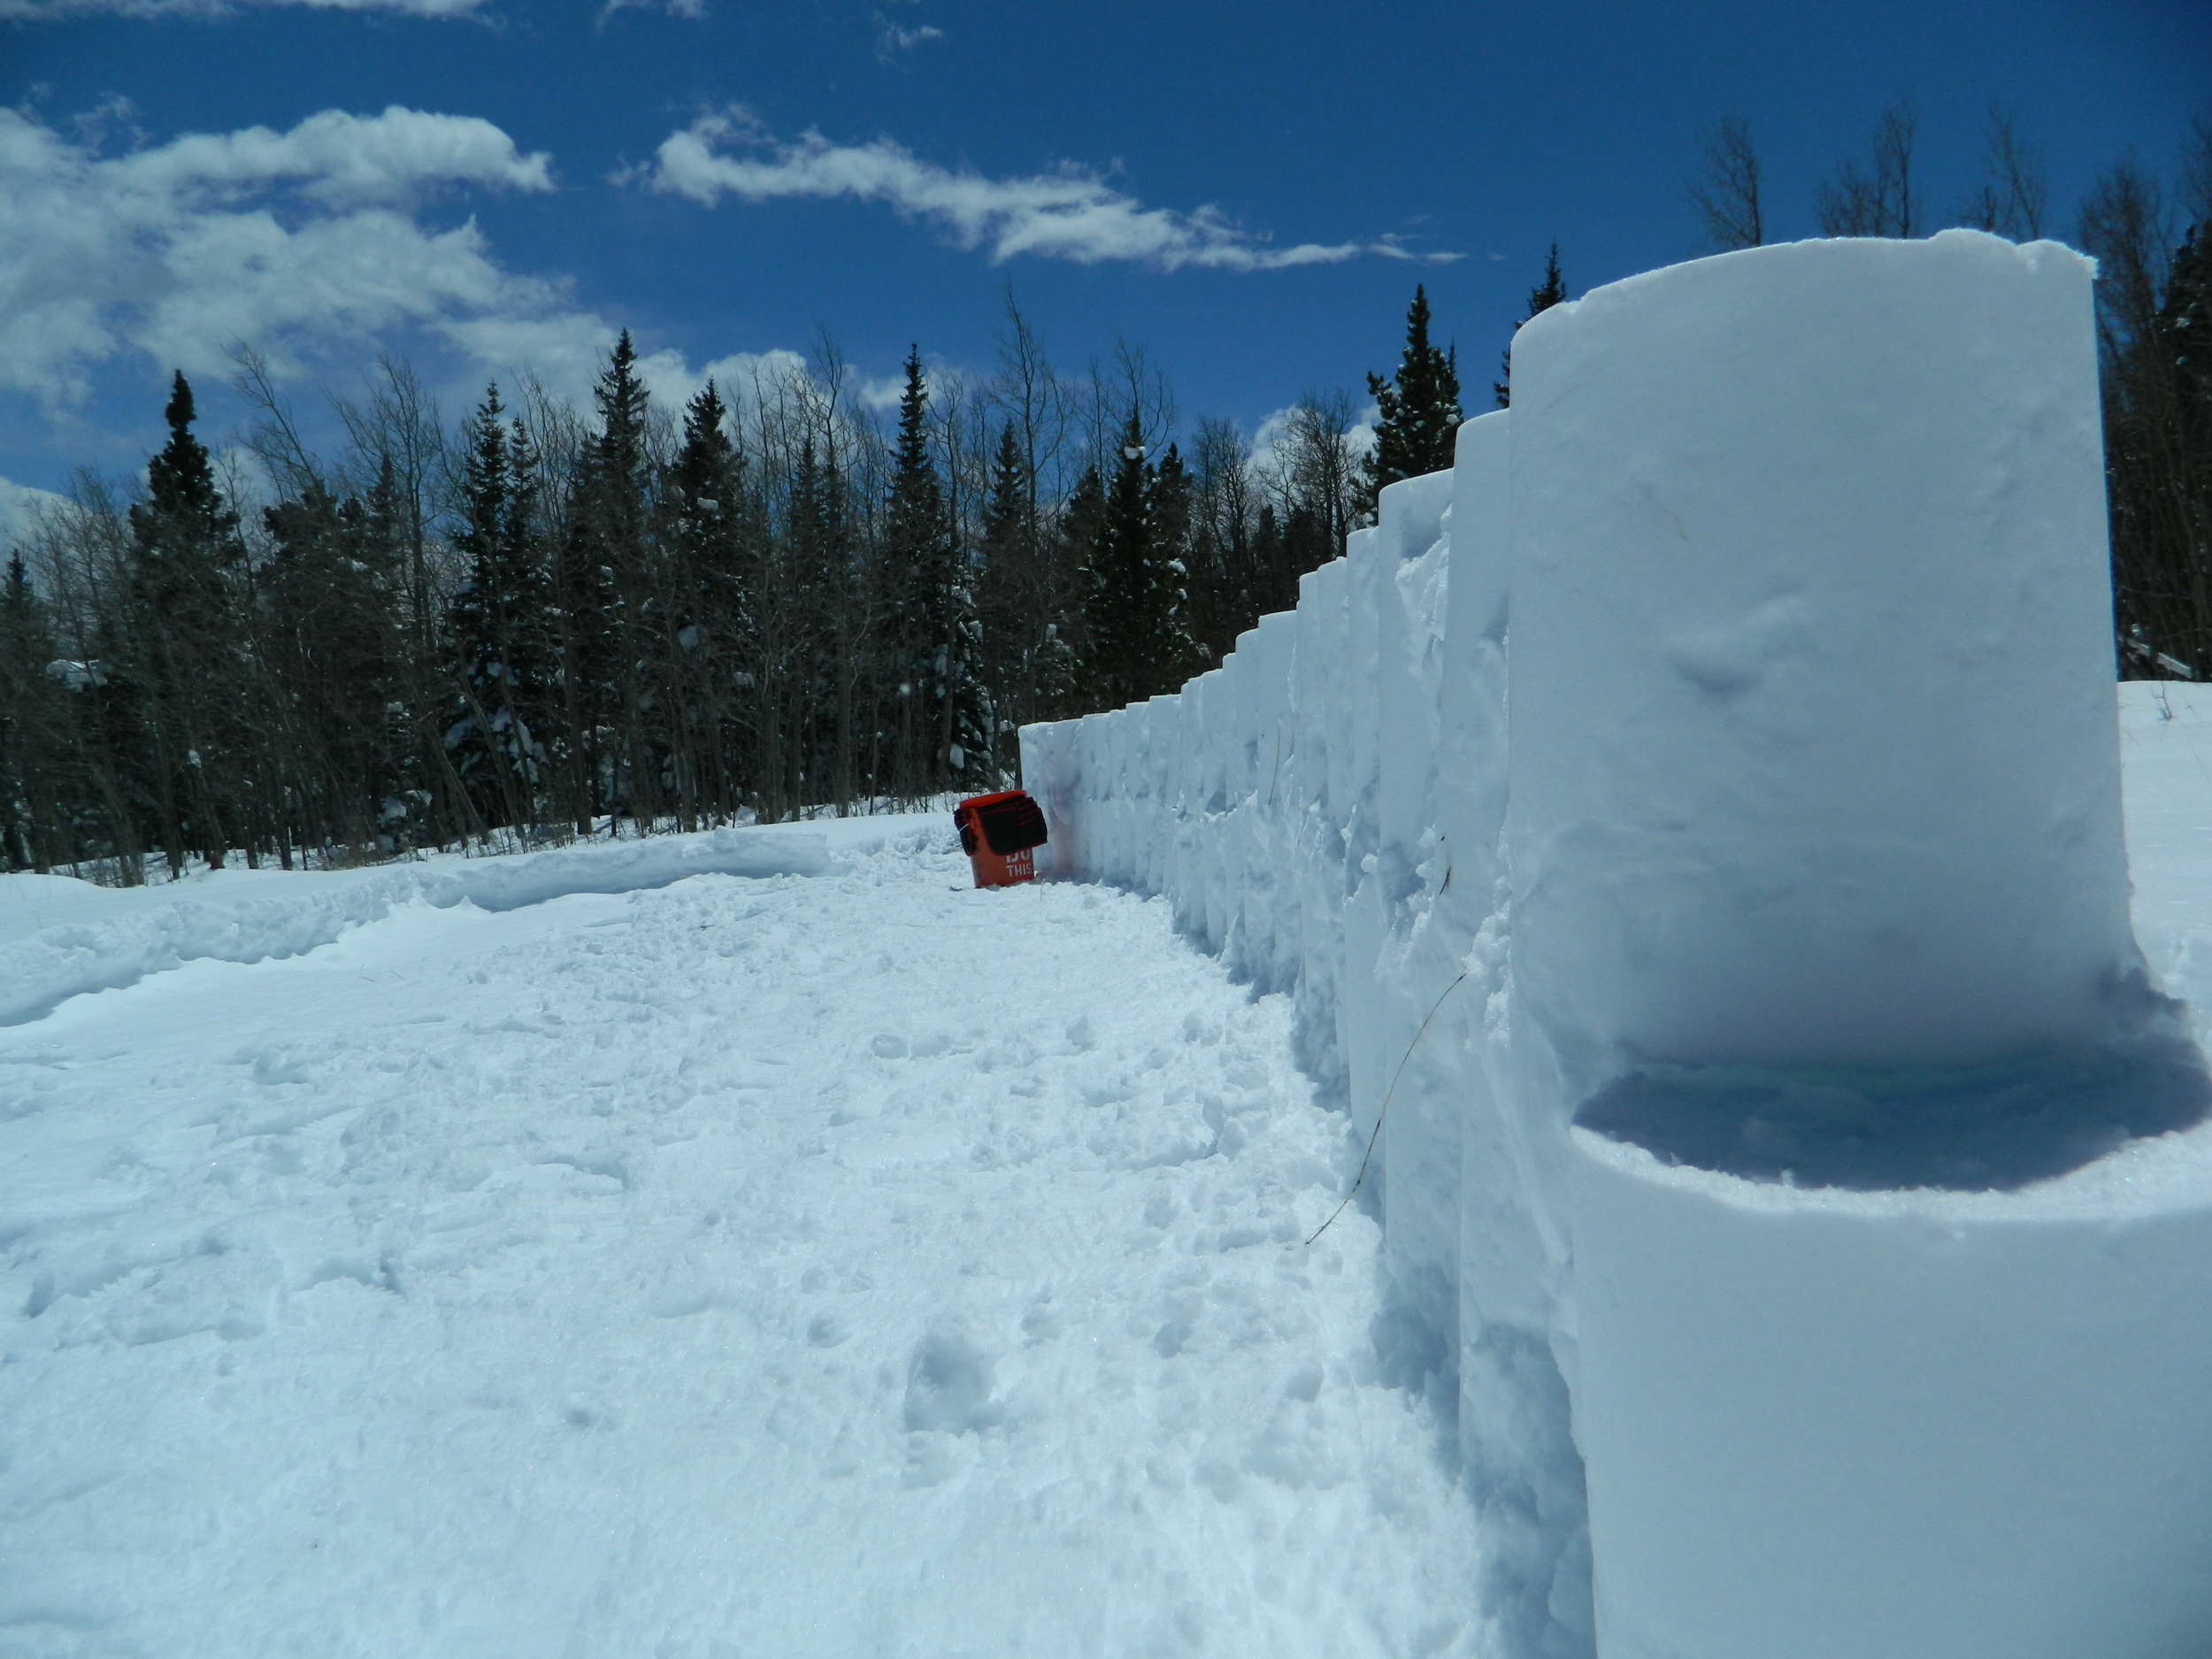 What I was able to construct yesterday using snow and my bucket.